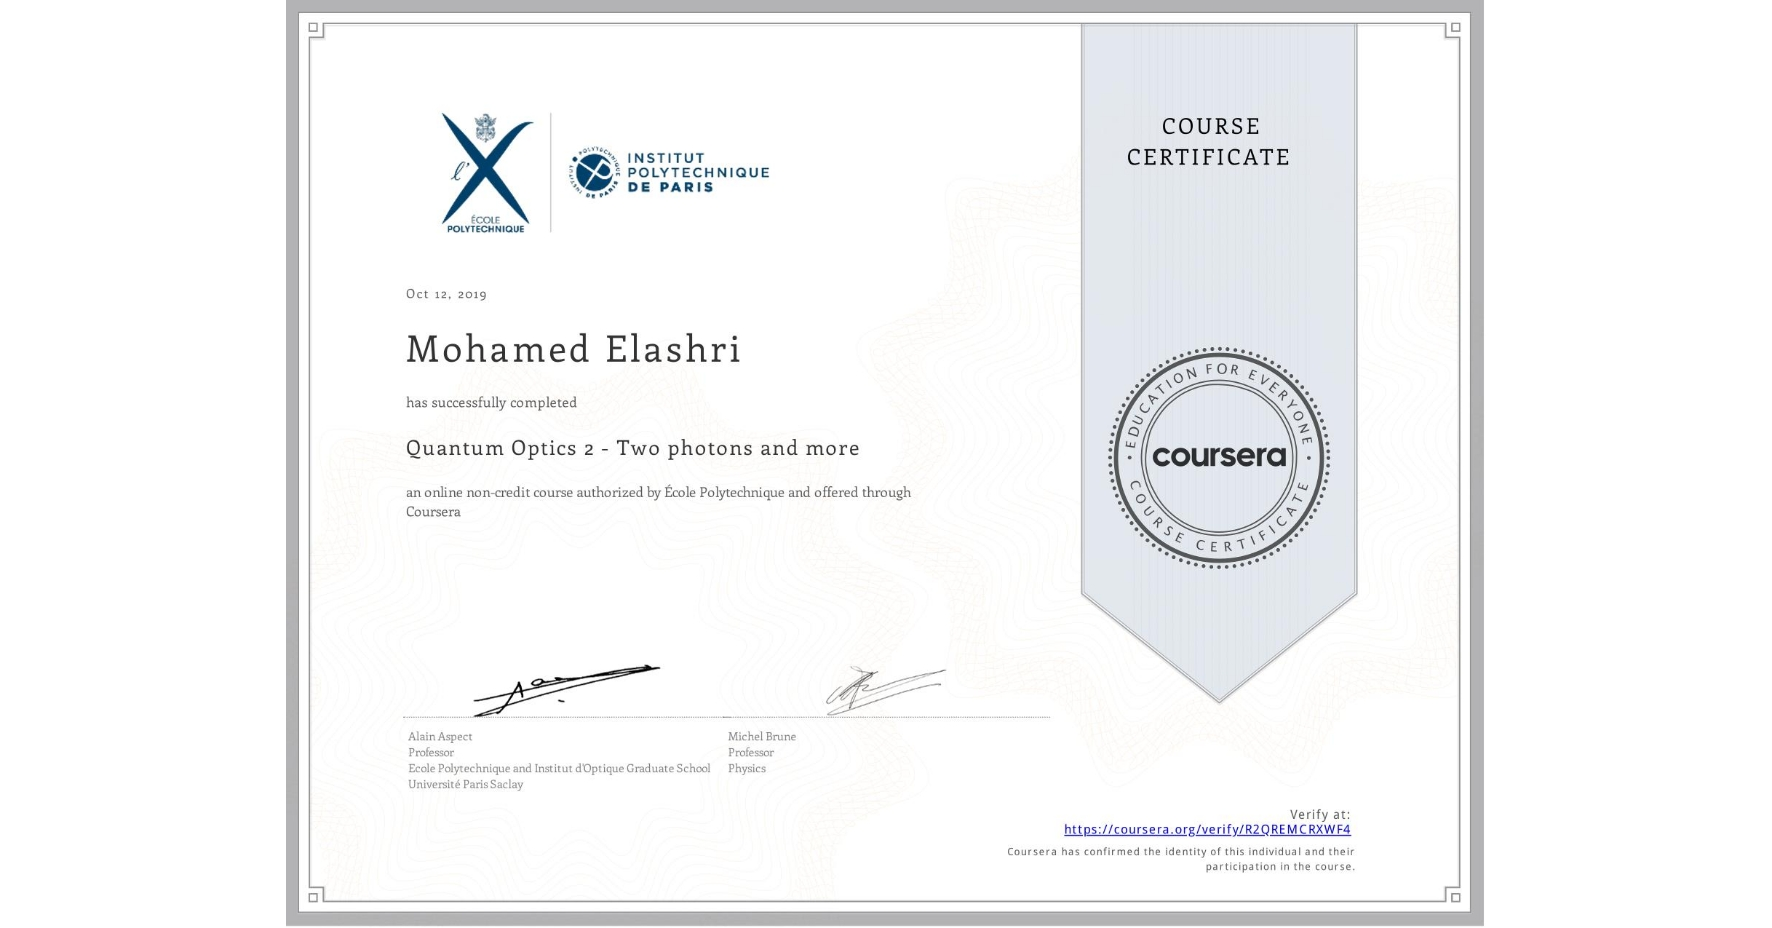 View certificate for Mohamed Elashri, Quantum Optics 2 - Two photons and more, an online non-credit course authorized by École Polytechnique and offered through Coursera